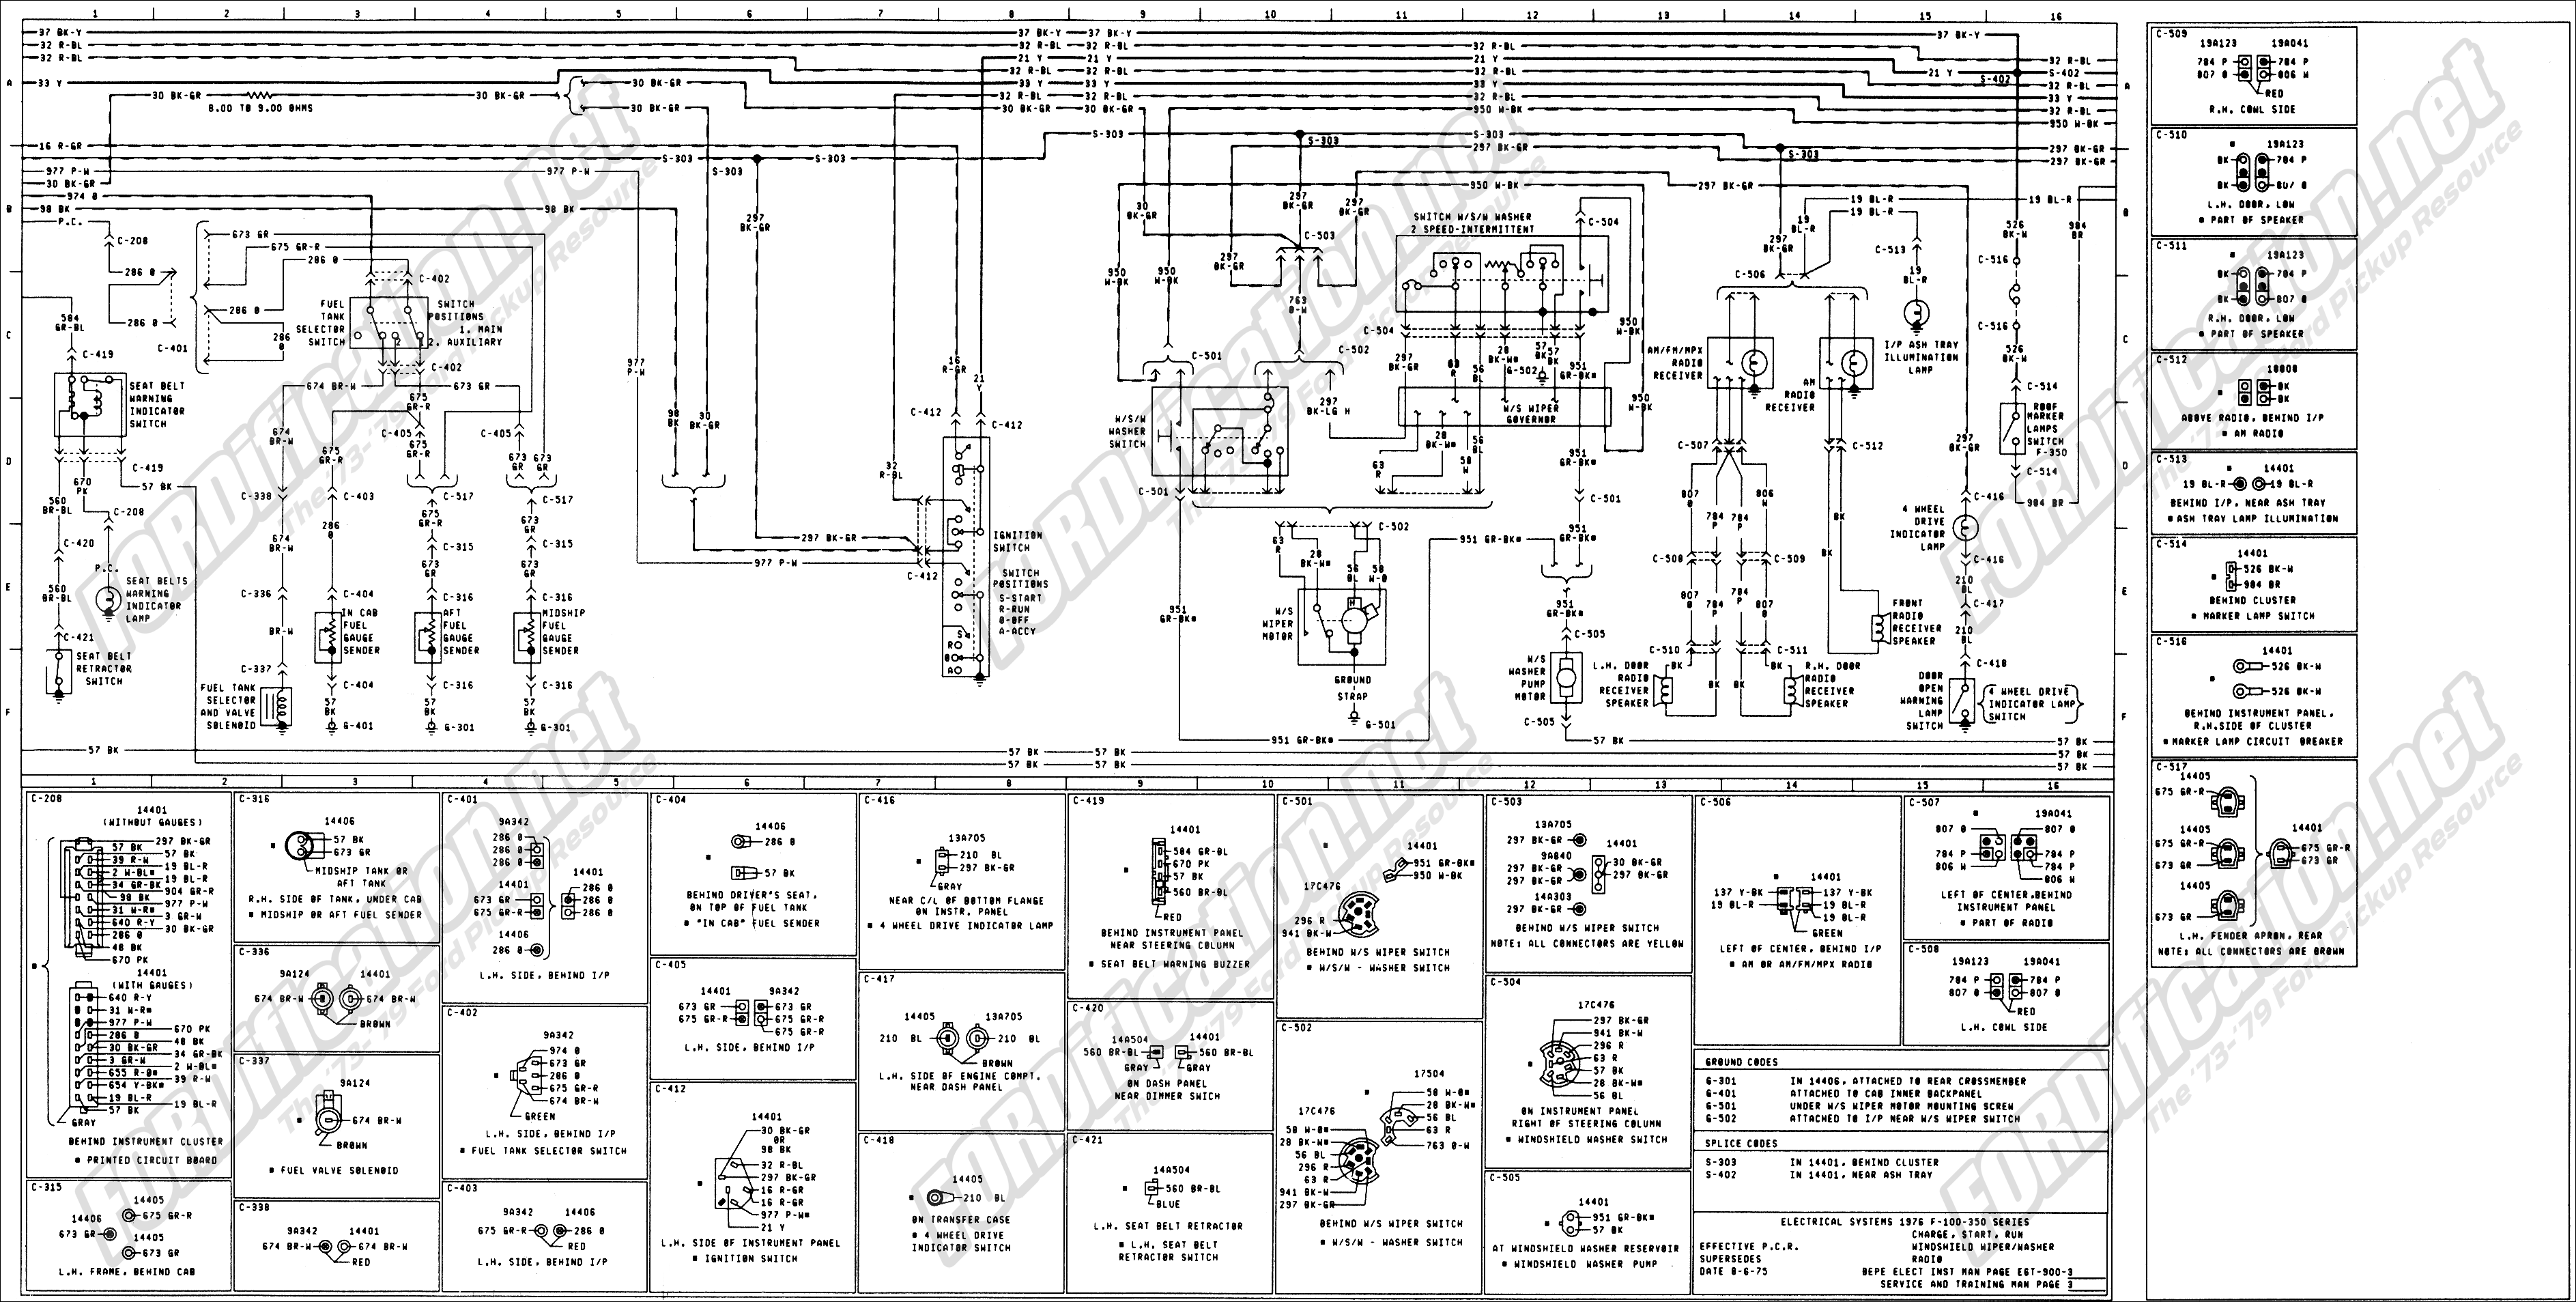 wiring_76master_3of9 1973 1979 ford truck wiring diagrams & schematics fordification net electrical wiring diagram ford transit download at mifinder.co